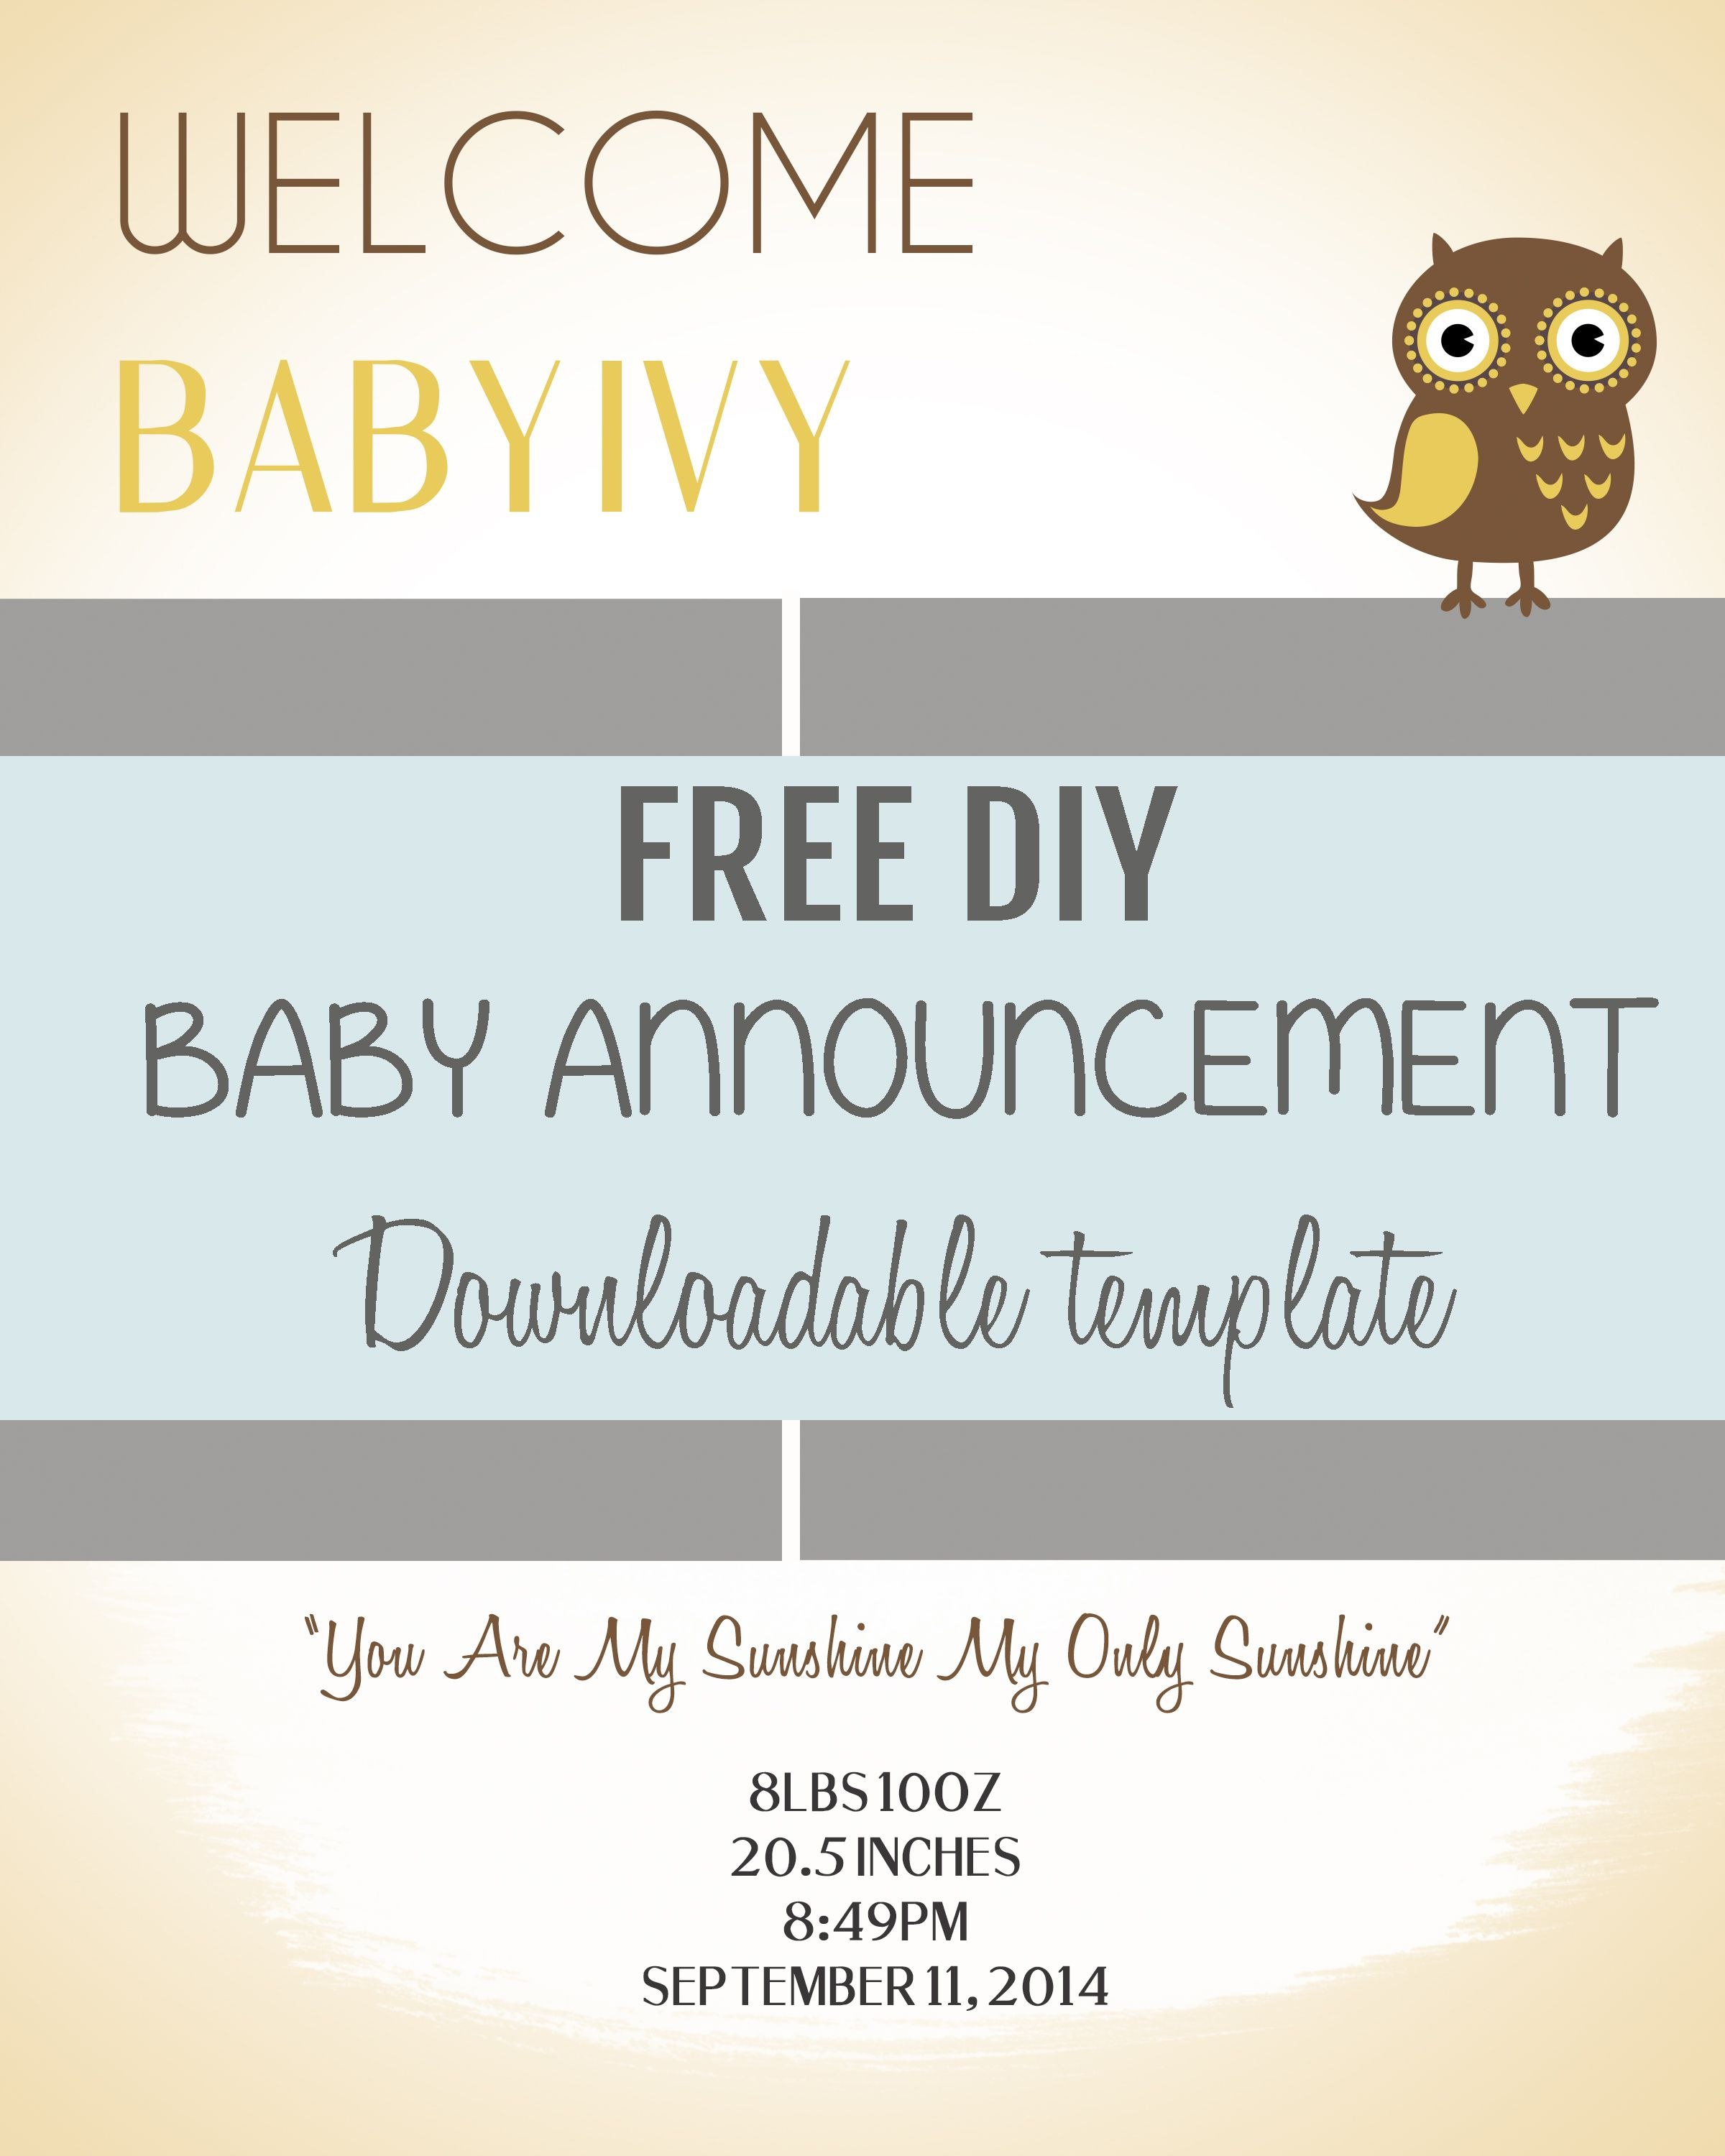 Diy Baby Announcement Template   Pee Wee   Fun Baby Announcement - Free Printable Baby Birth Announcement Cards